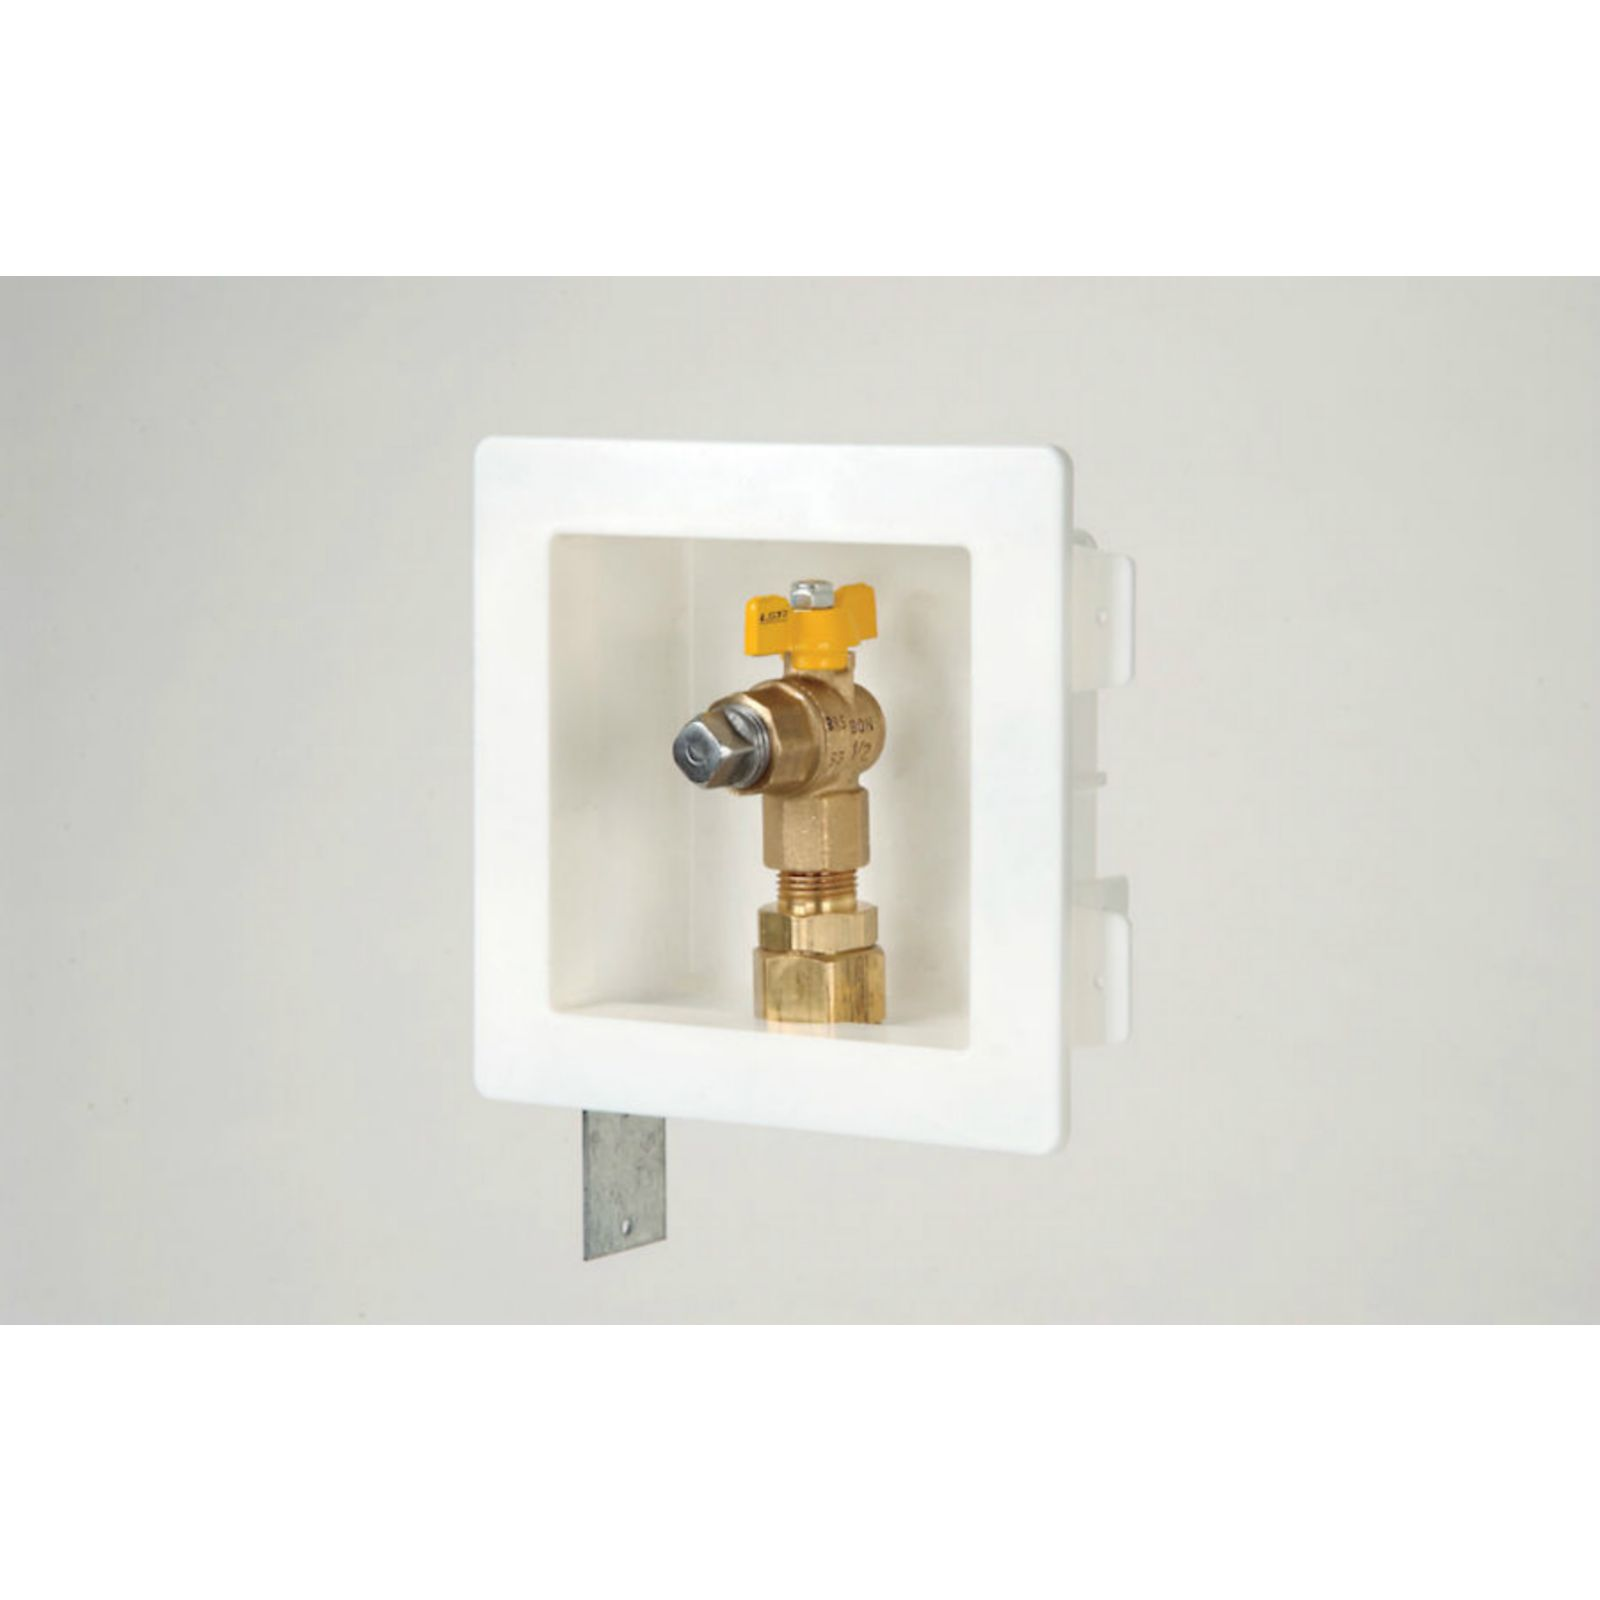 "Gastite XROUTLETBOX-8 - Recessed Gas Outlet Box Kit With 1/2"" Fitting"